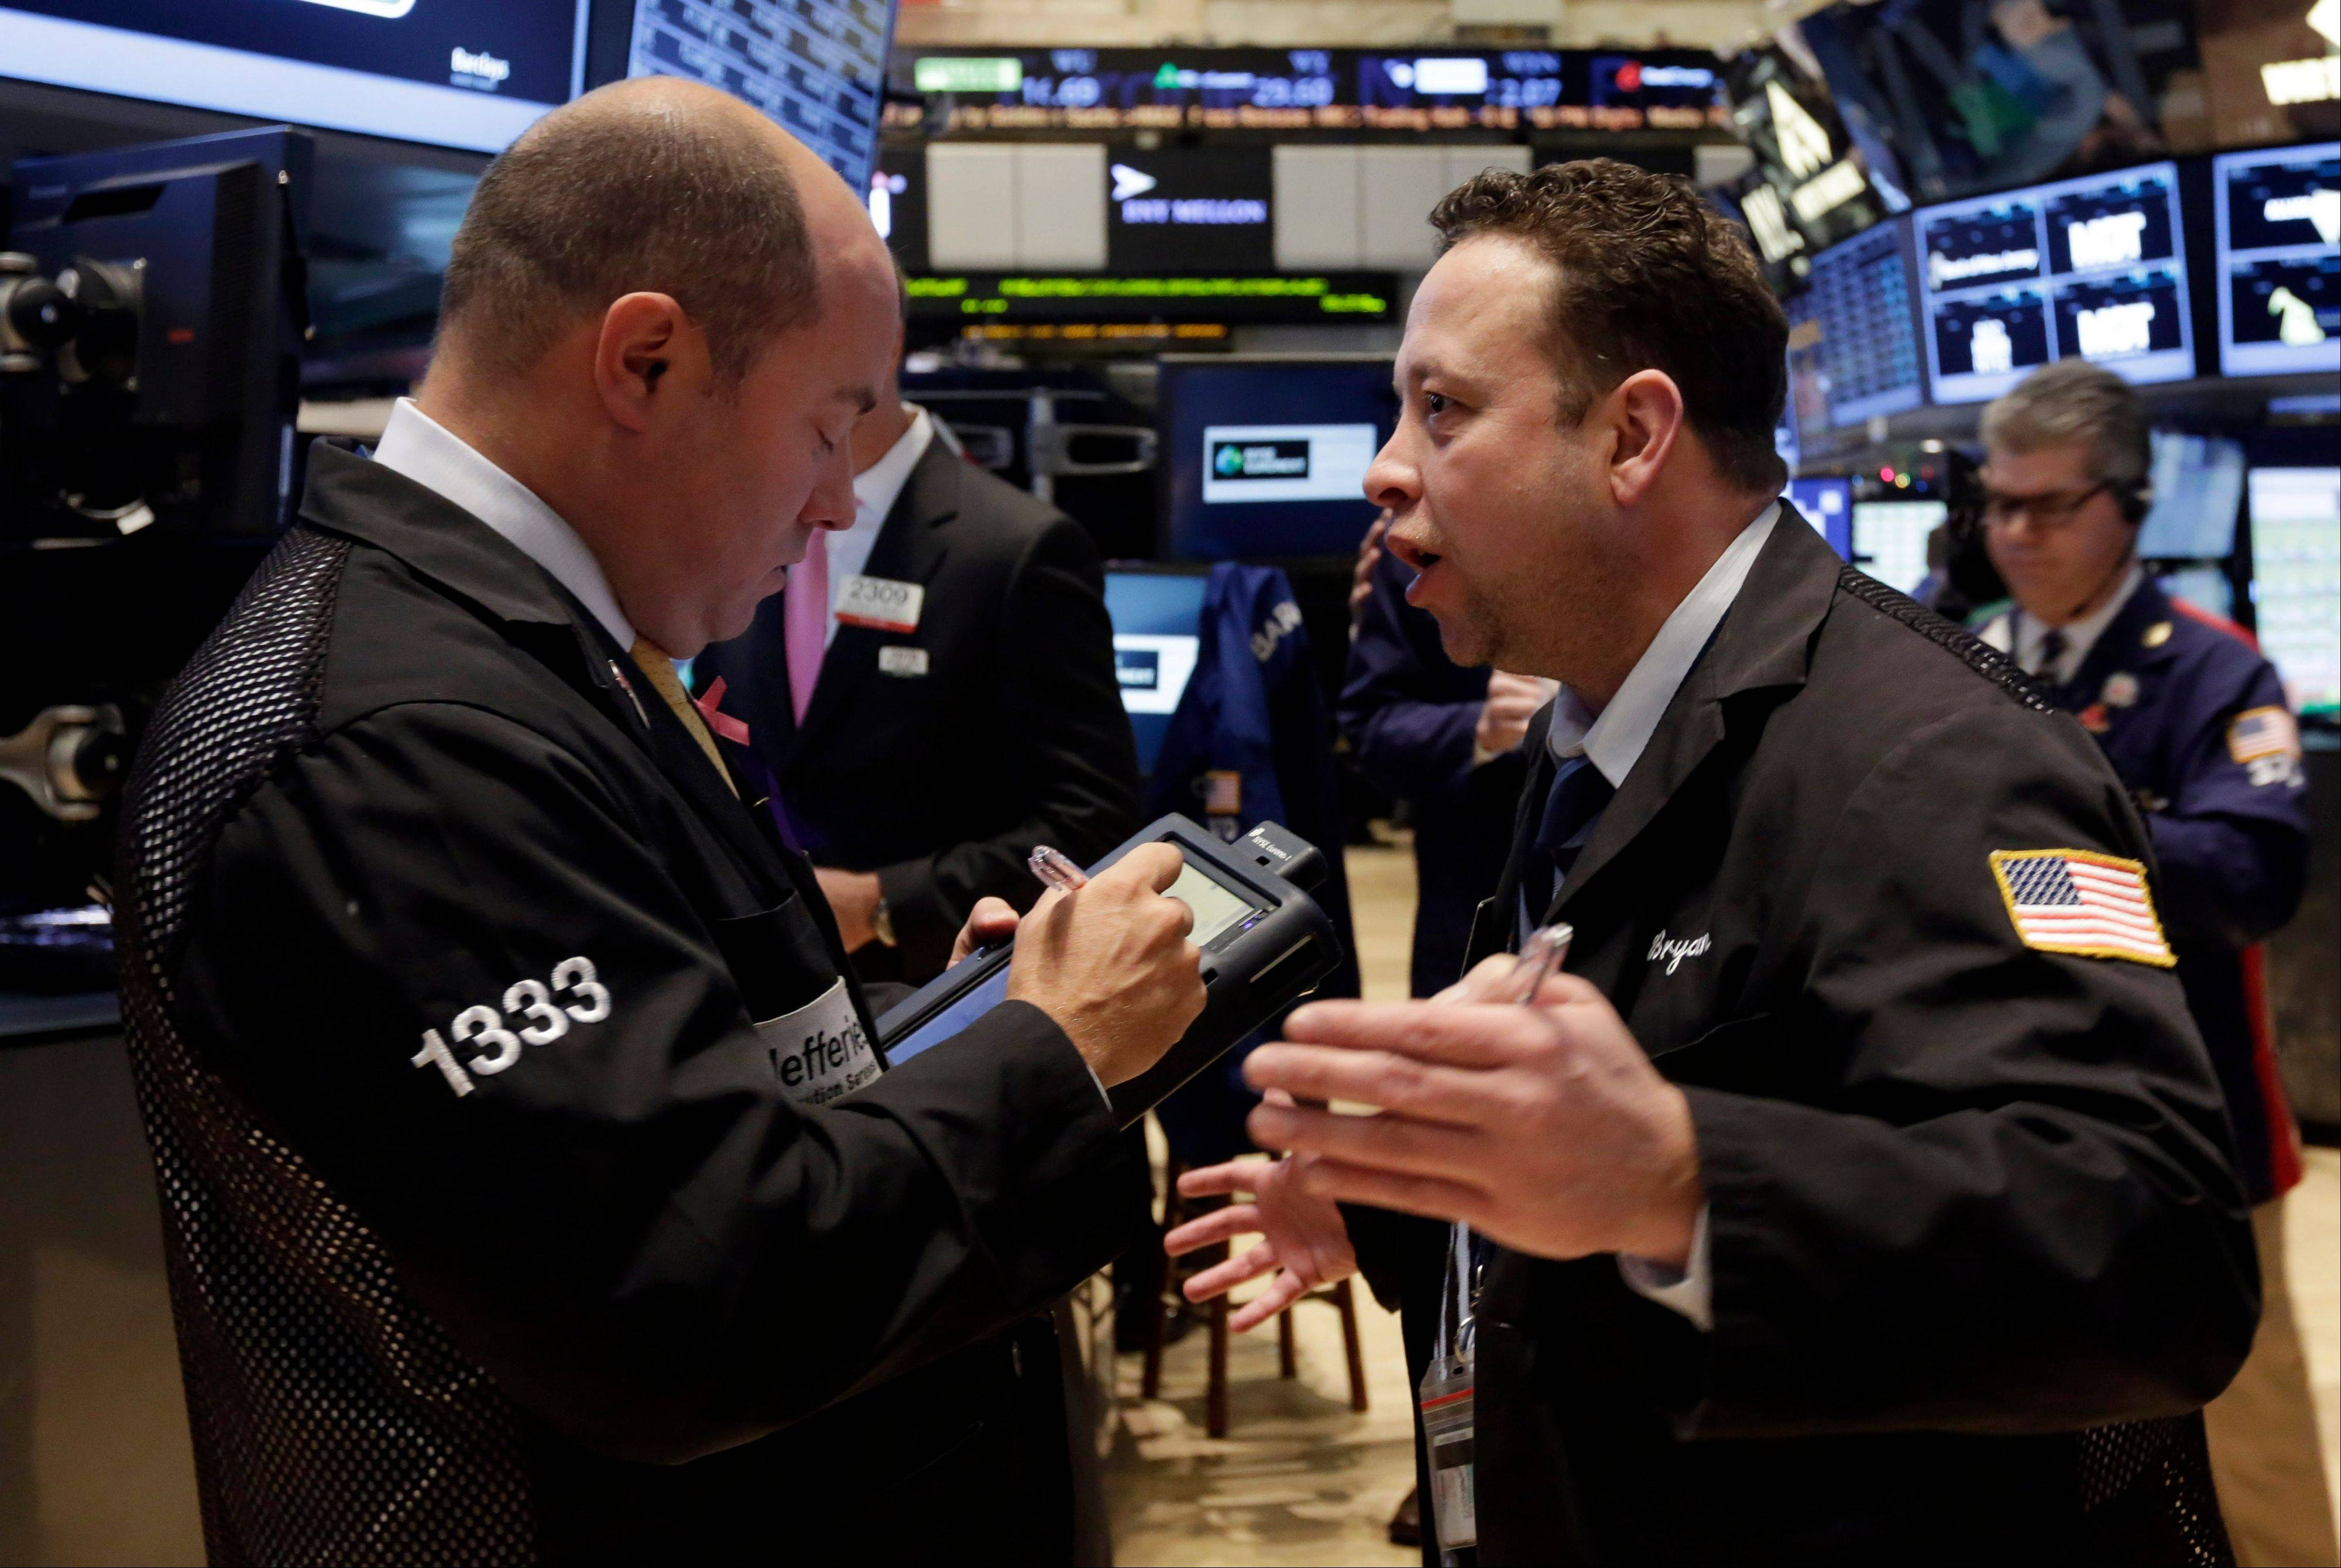 U.S. stocks fell a second day Wednesday, giving the Standard & Poor's 500 Index its biggest back-to-back drop in two months, as a congressional budget accord fueled speculation the Federal Reserve could trim stimulus next week.